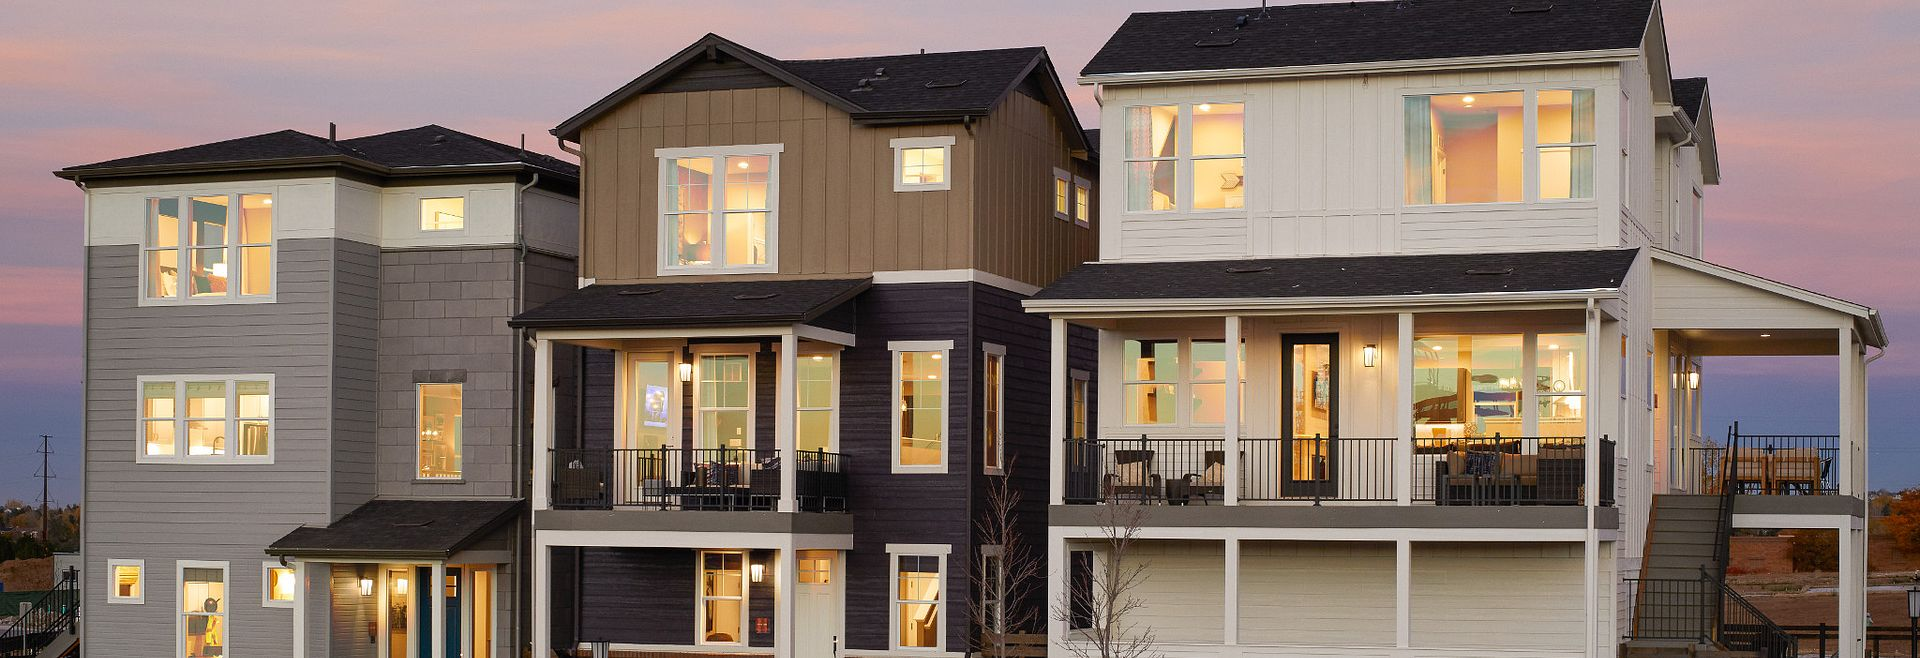 exterior of 3 model homes in evening at Crescendo Central Park in Colorado